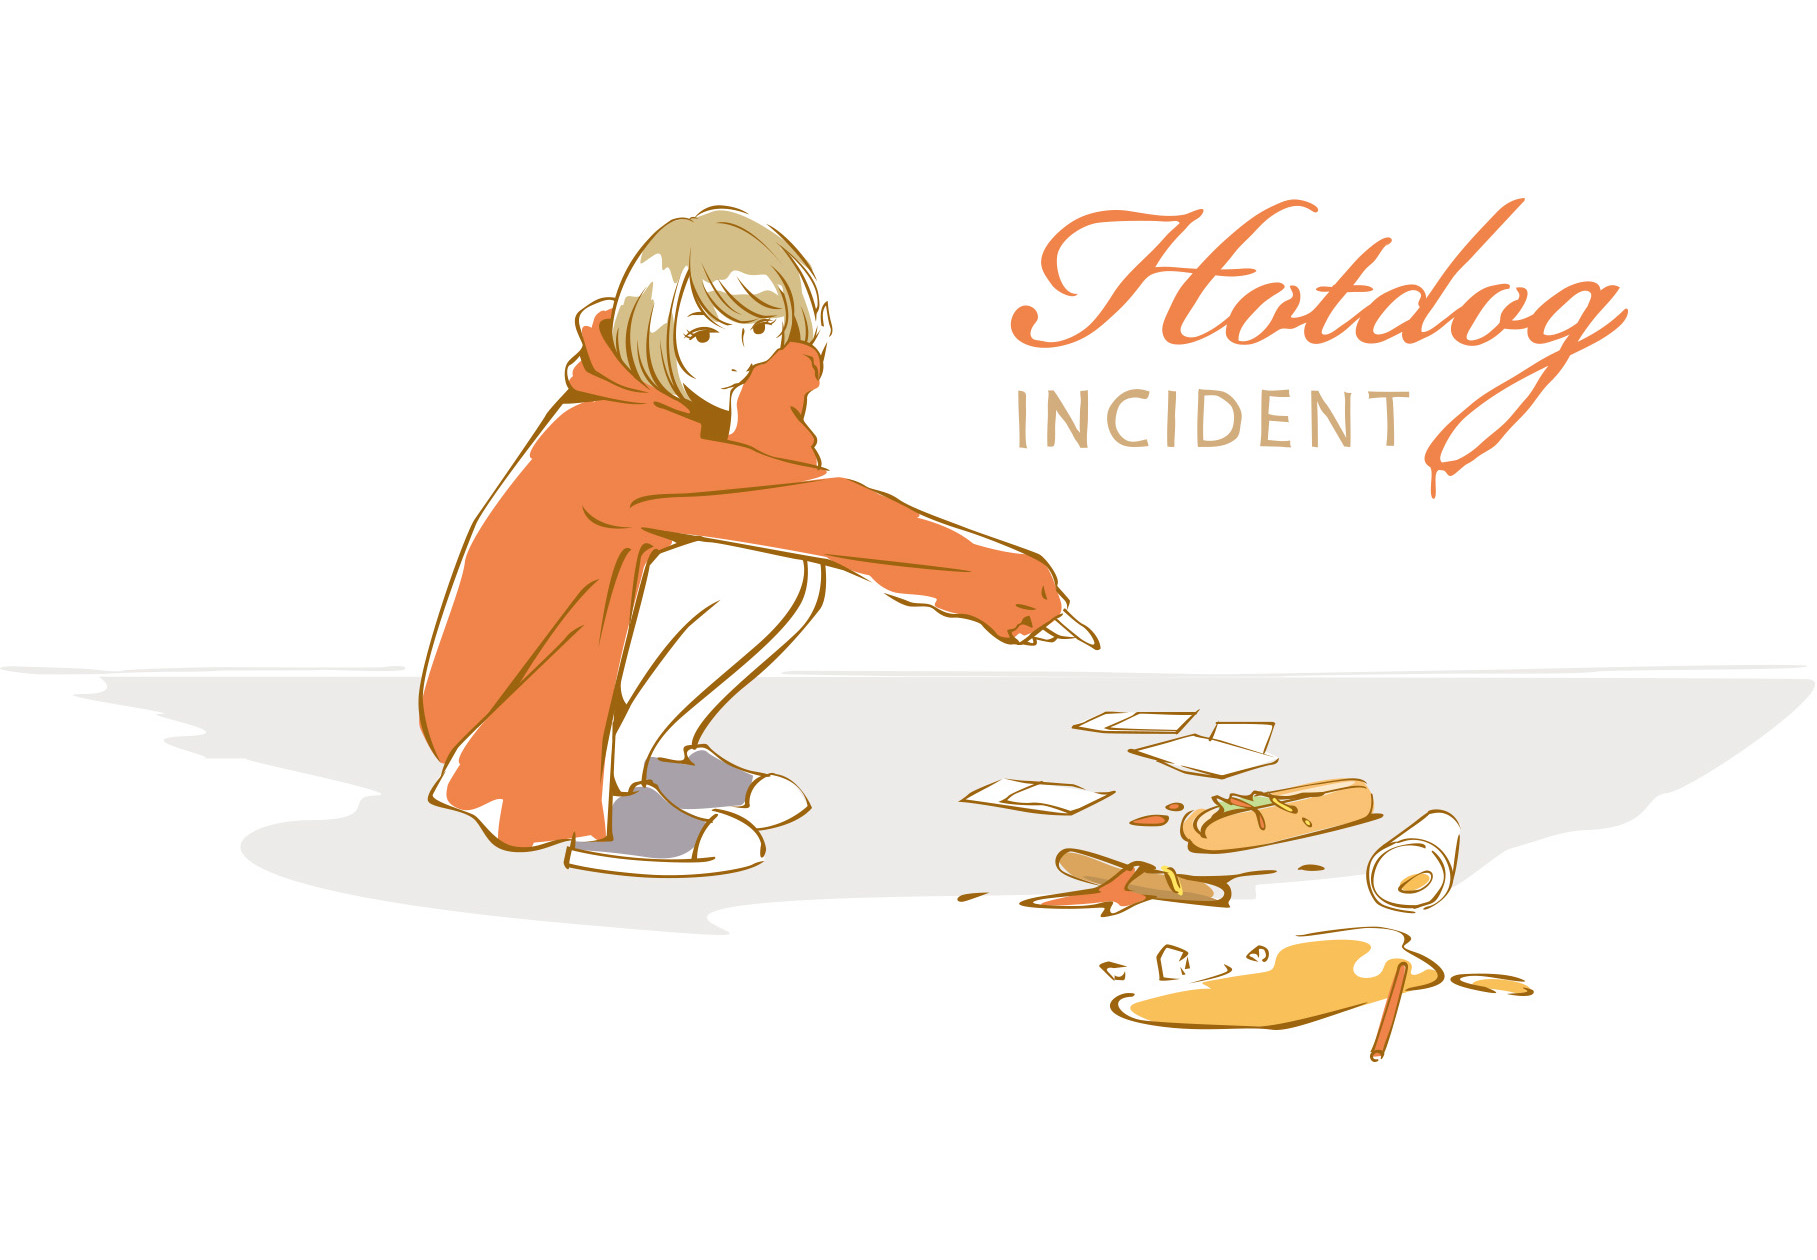 Hotdog Incident